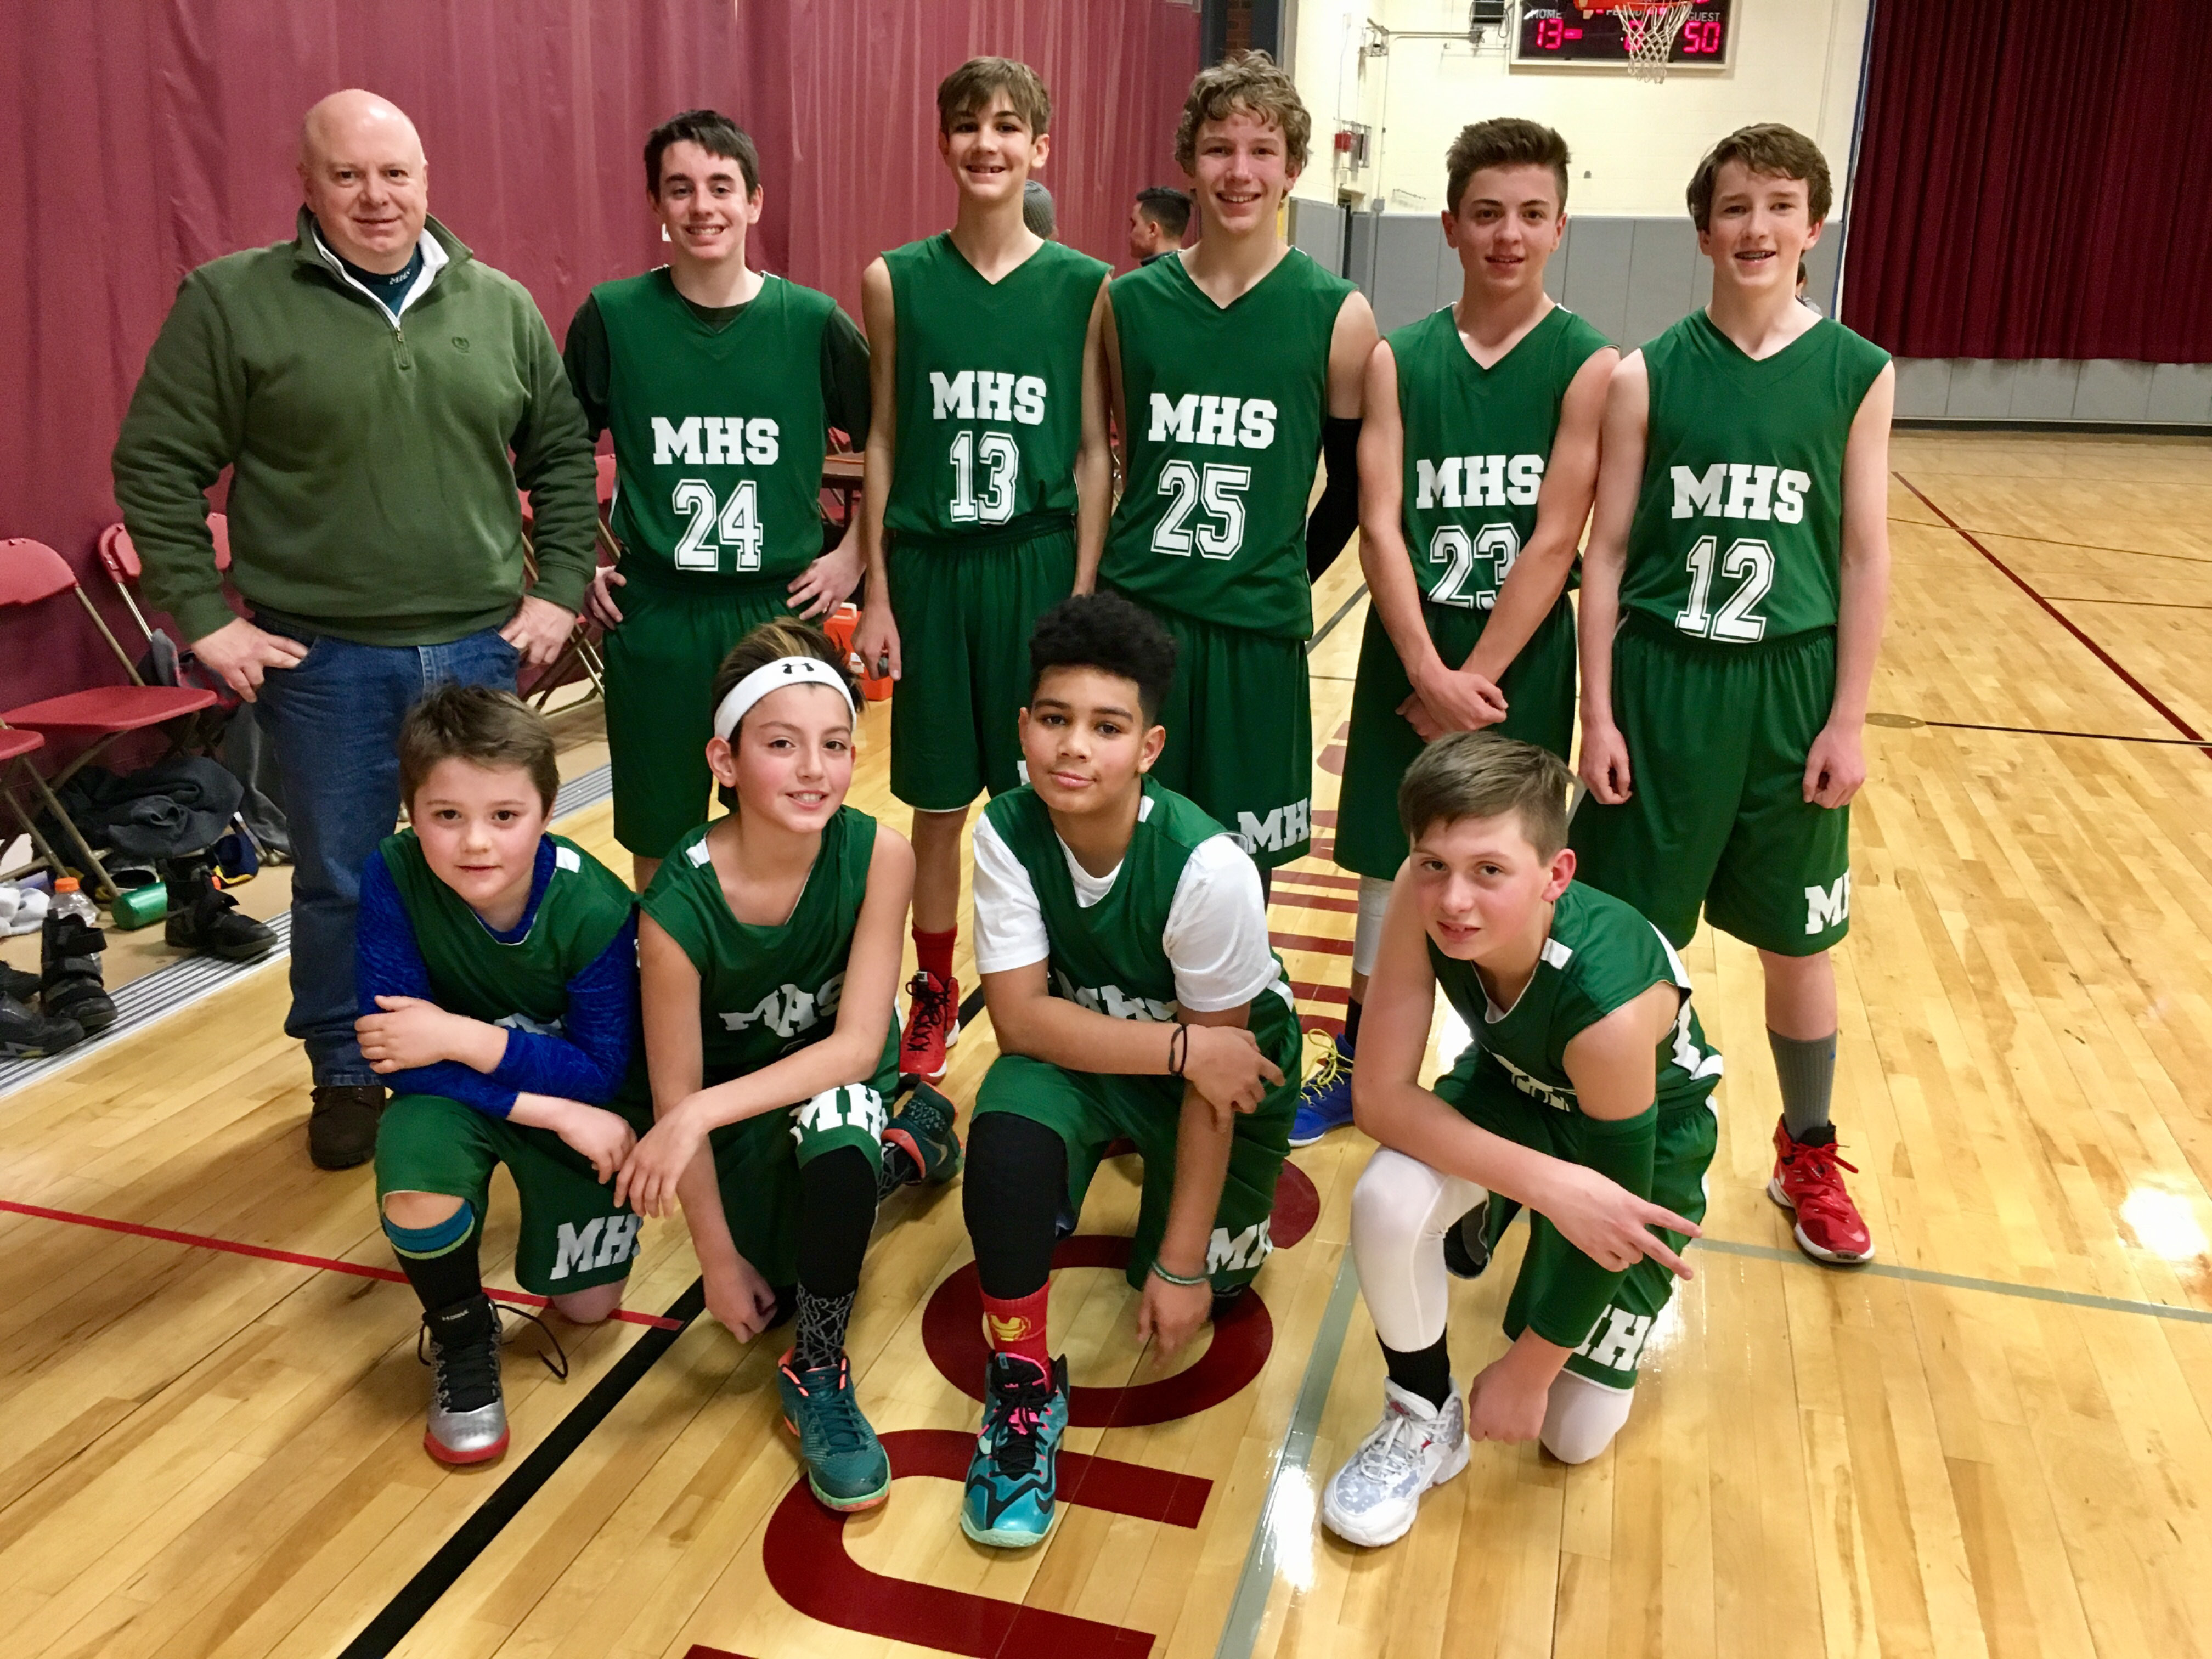 The Mooreland Hill School boys basketball team, front row, from left: Cyrus Revenaugh, Macario Mendoza, Kameron Garcia, and Joseph LeConche. Back row: Coach Bob LeConche, AJ Argazzi, Liam Curley, Josh Cronkhite, Jack Luppino and Jack Carter.